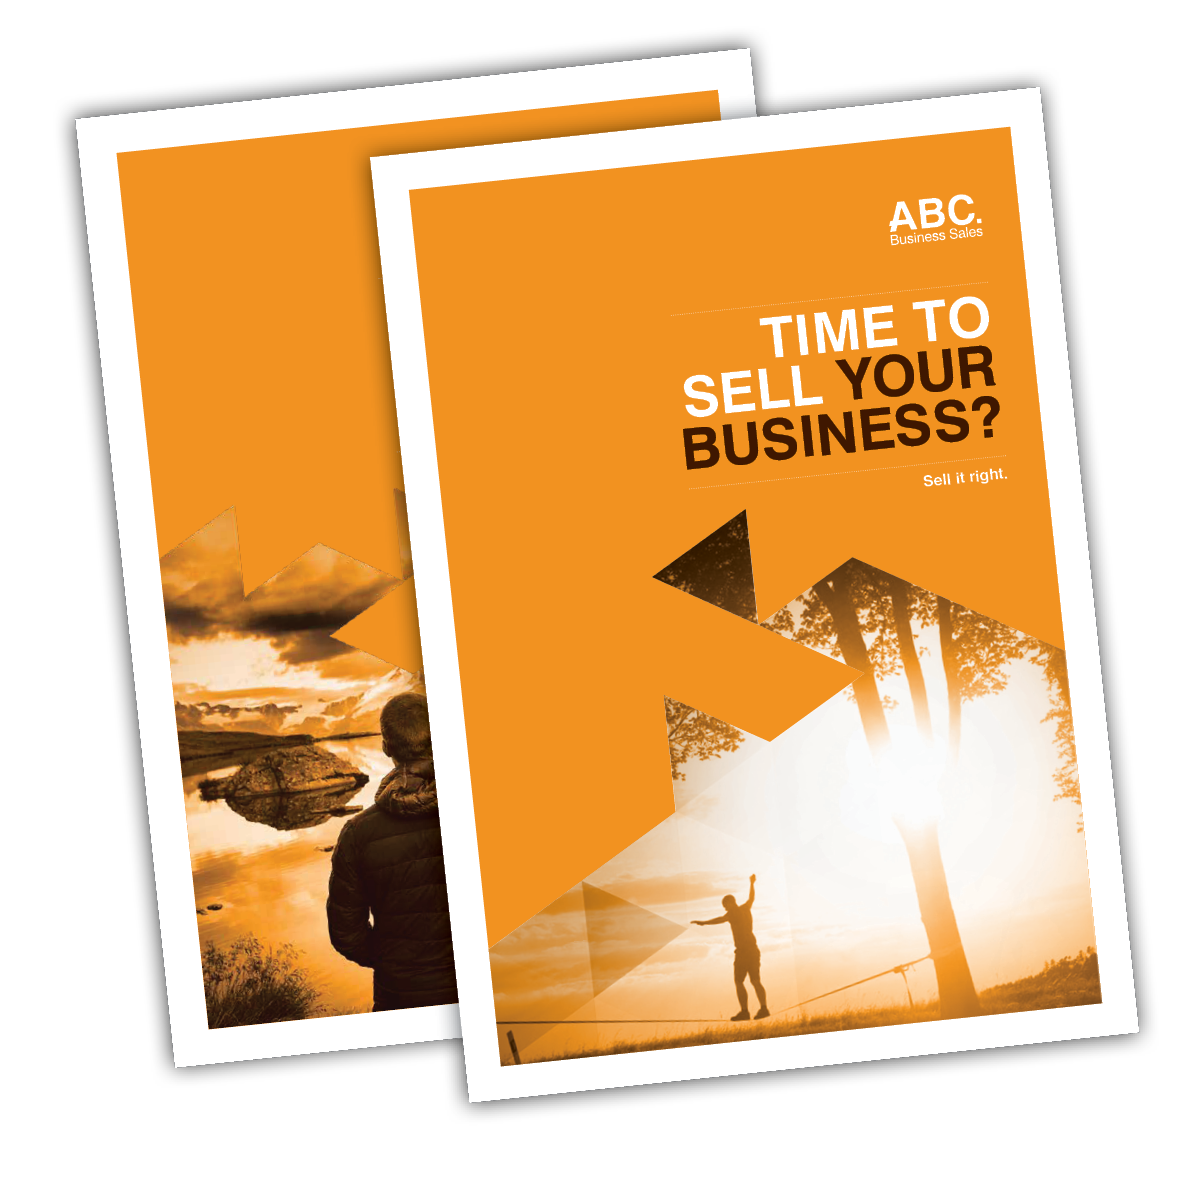 Get your FREE Buy it Right guide now with ABC Business Sales